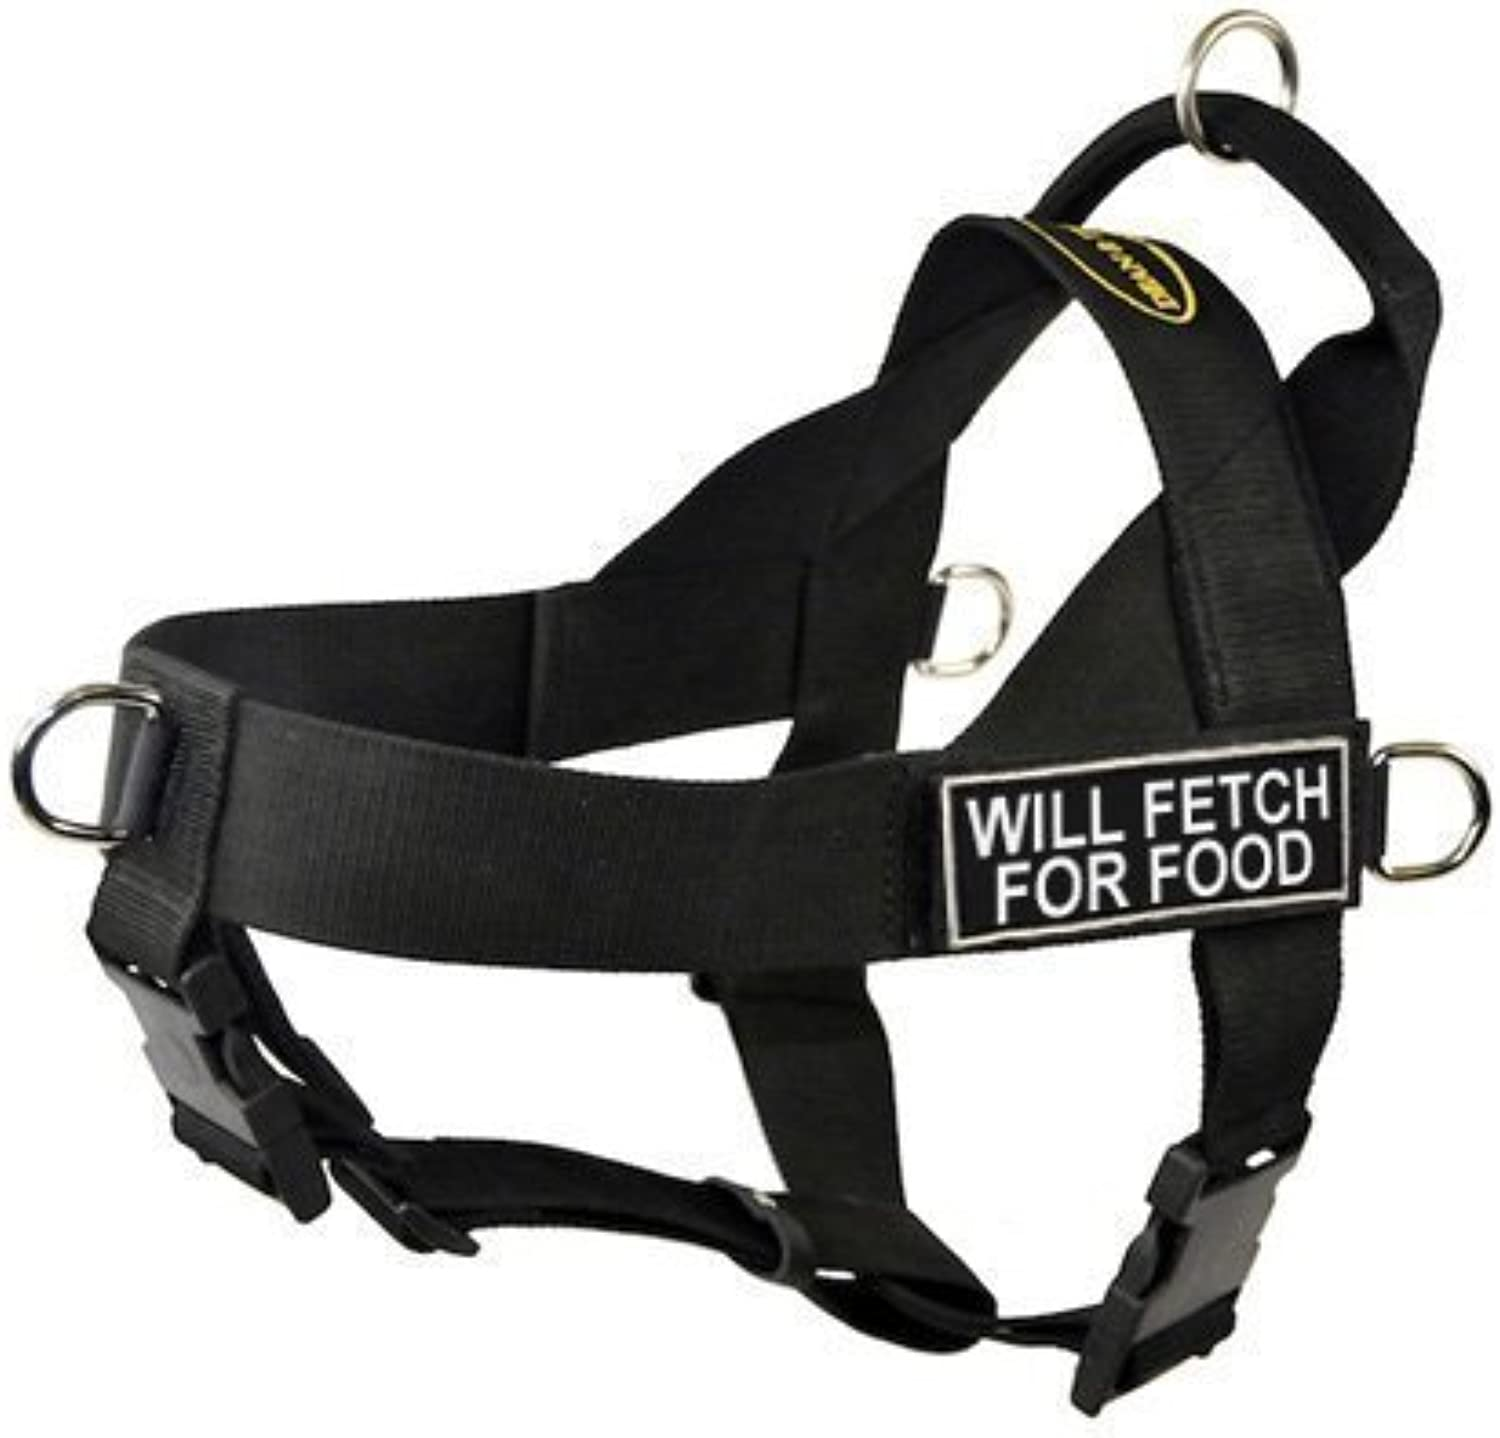 DT Universal No Pull Dog Harness, Will Fetch For Food, Black, XSmall  Fits Girth Size  51cm to 64cm